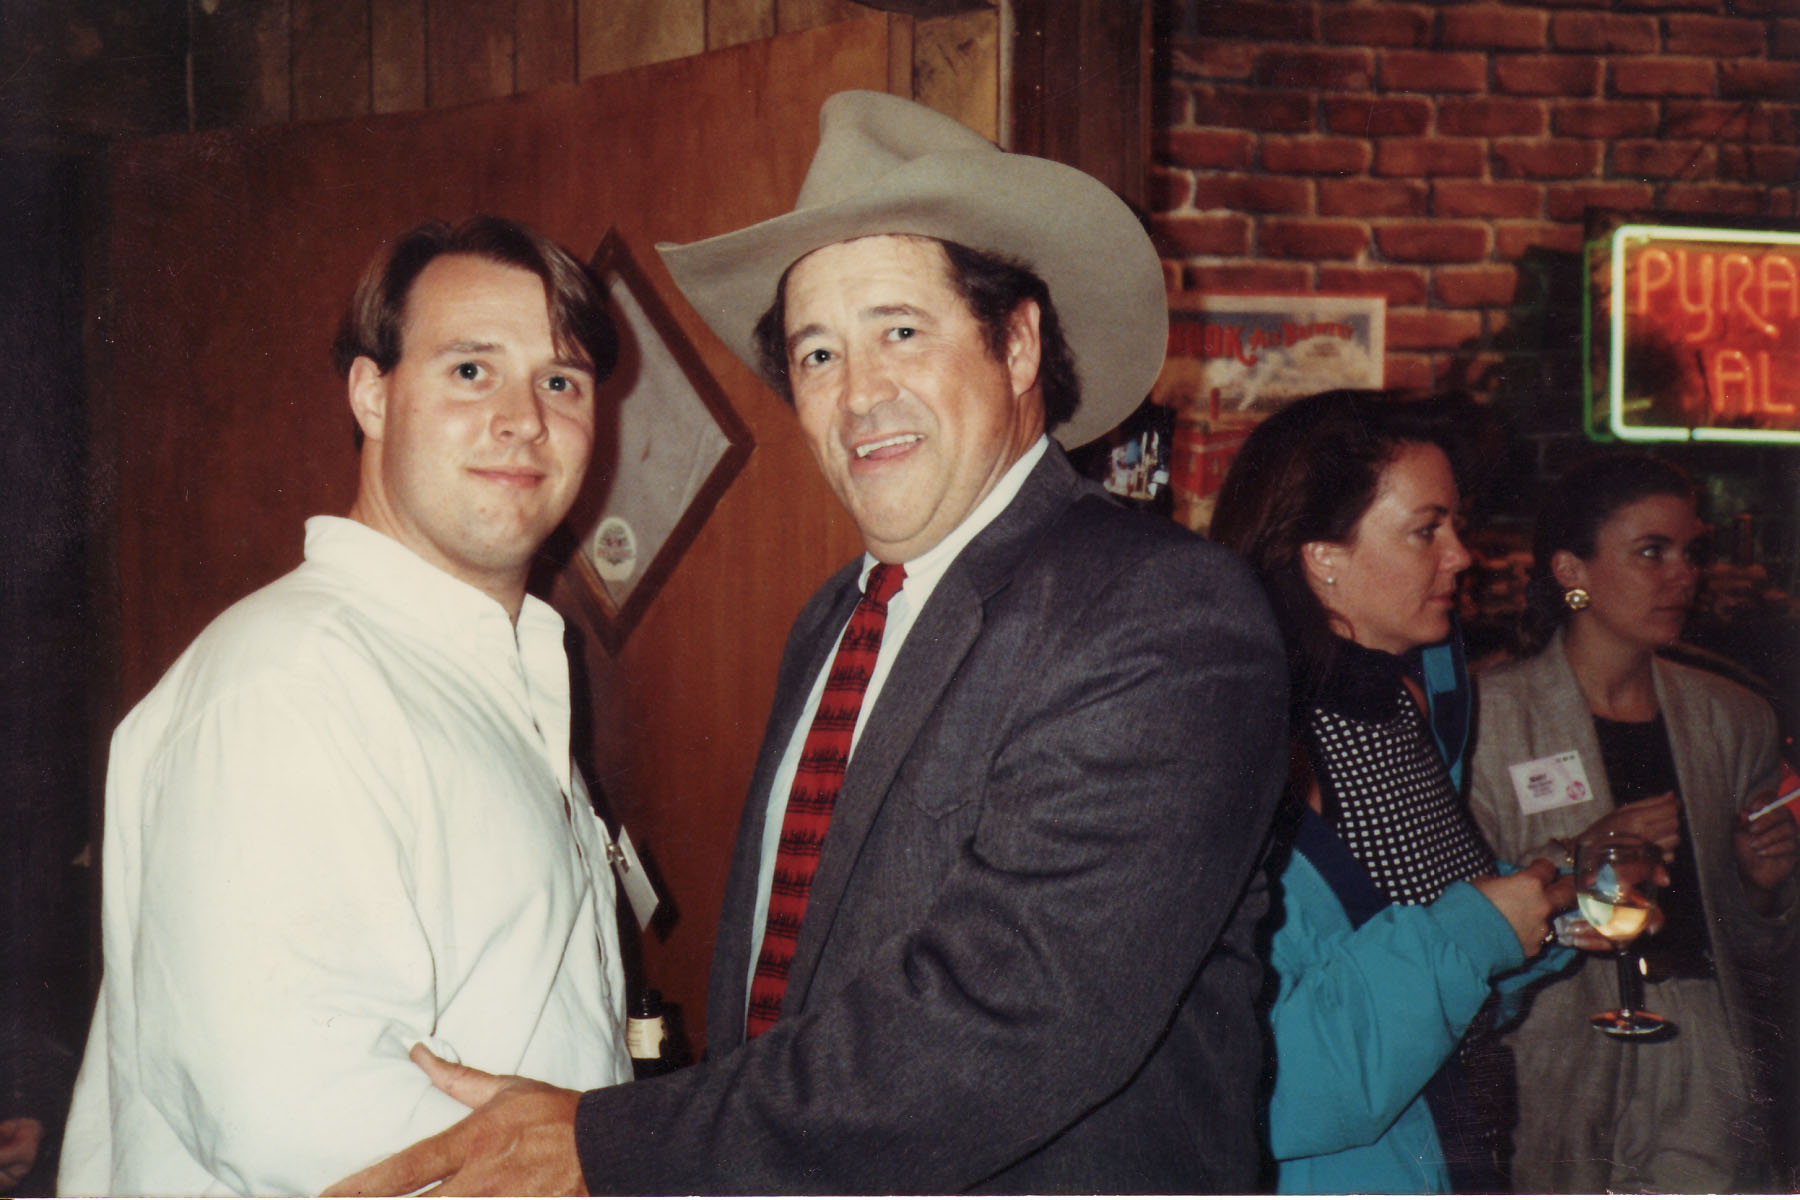 Dave Spraker with actor Barry Corbin